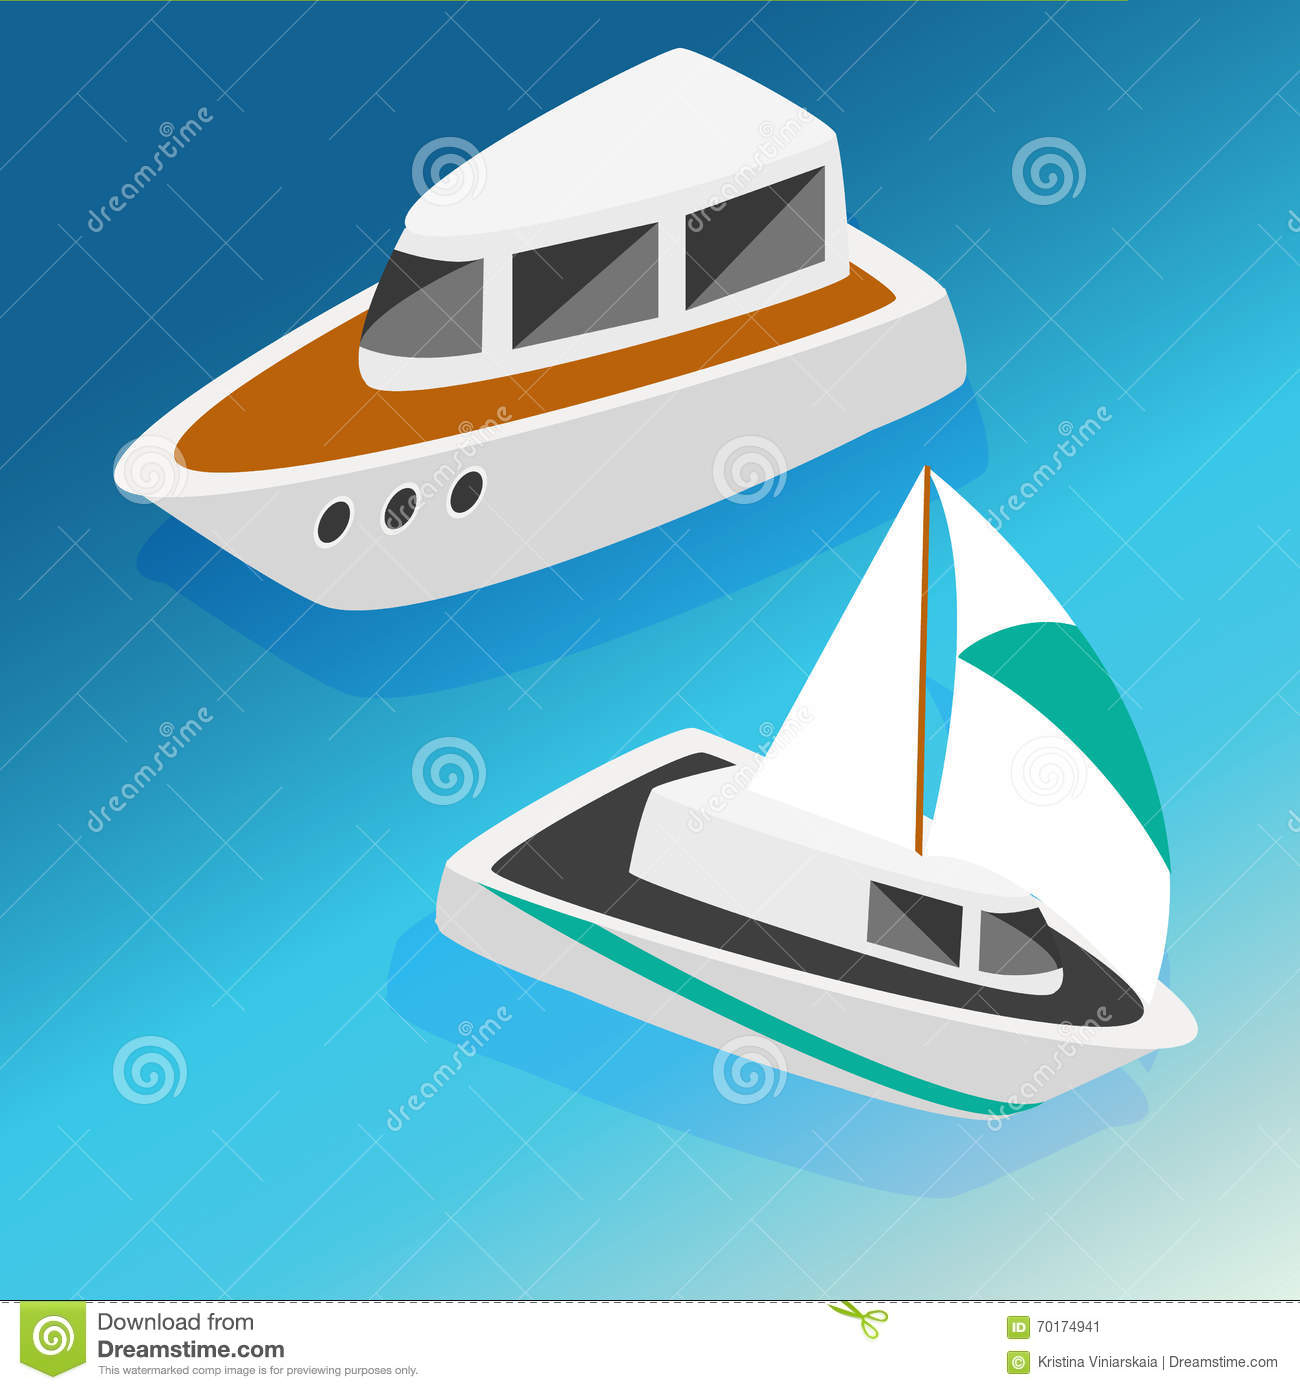 Ships Yachts Boats Isometric Icons Set Vector Illustration